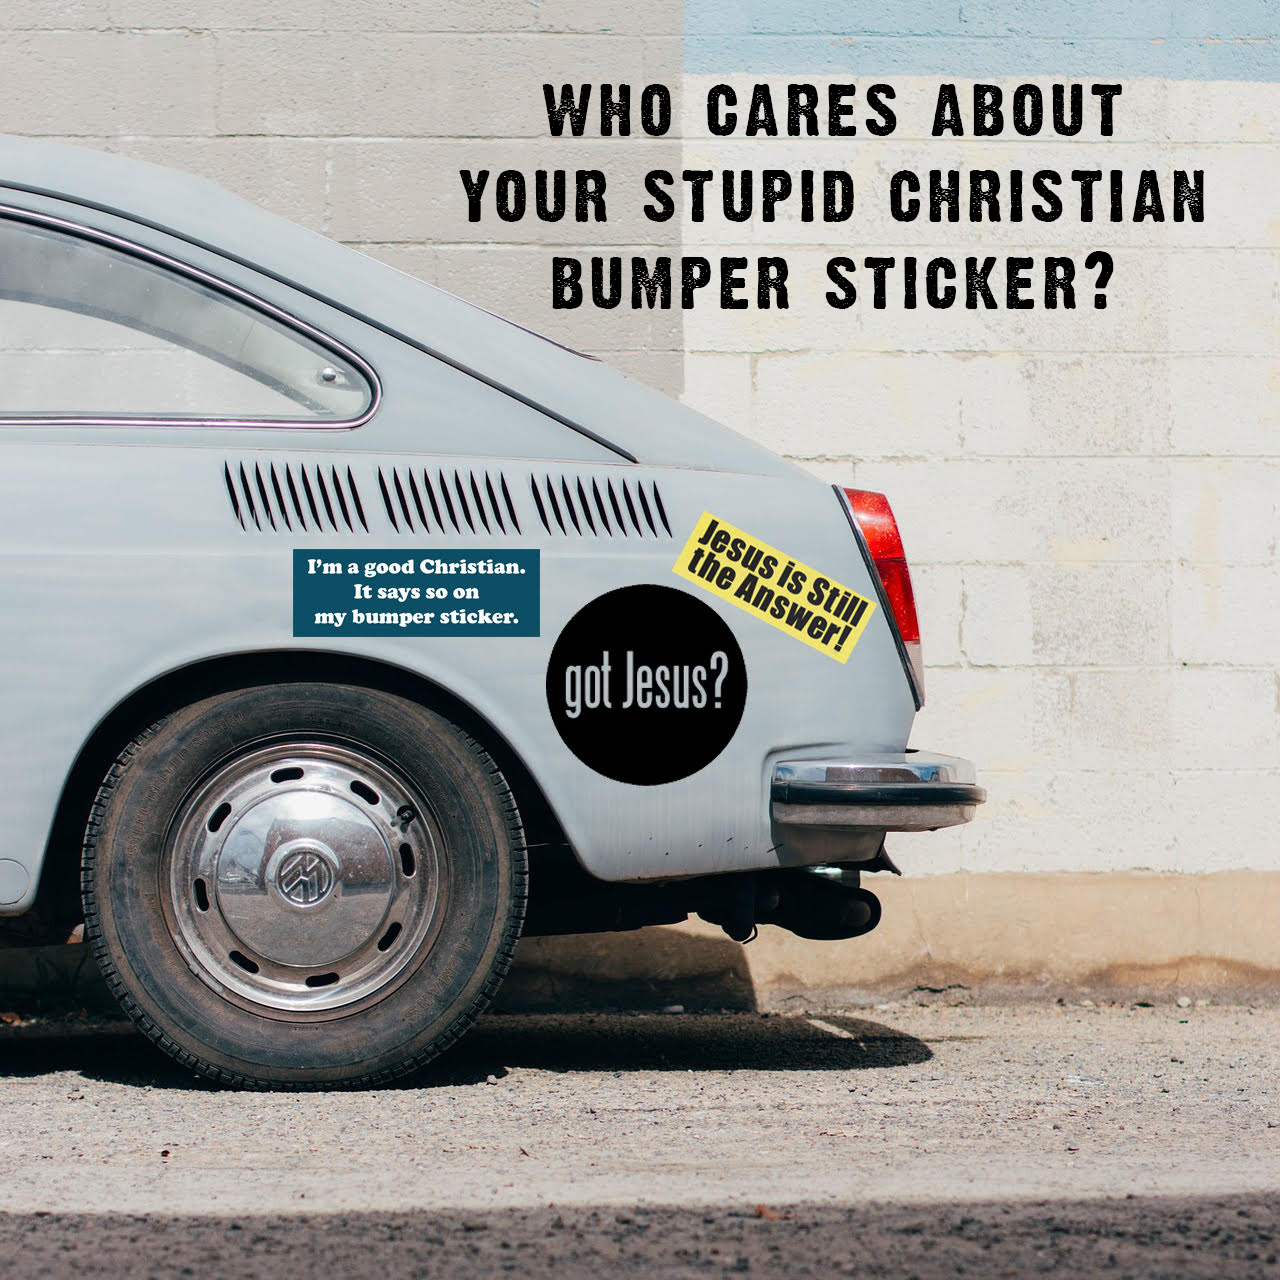 who-cares-about-your-stupid-christian-bumper-sticker.jpg